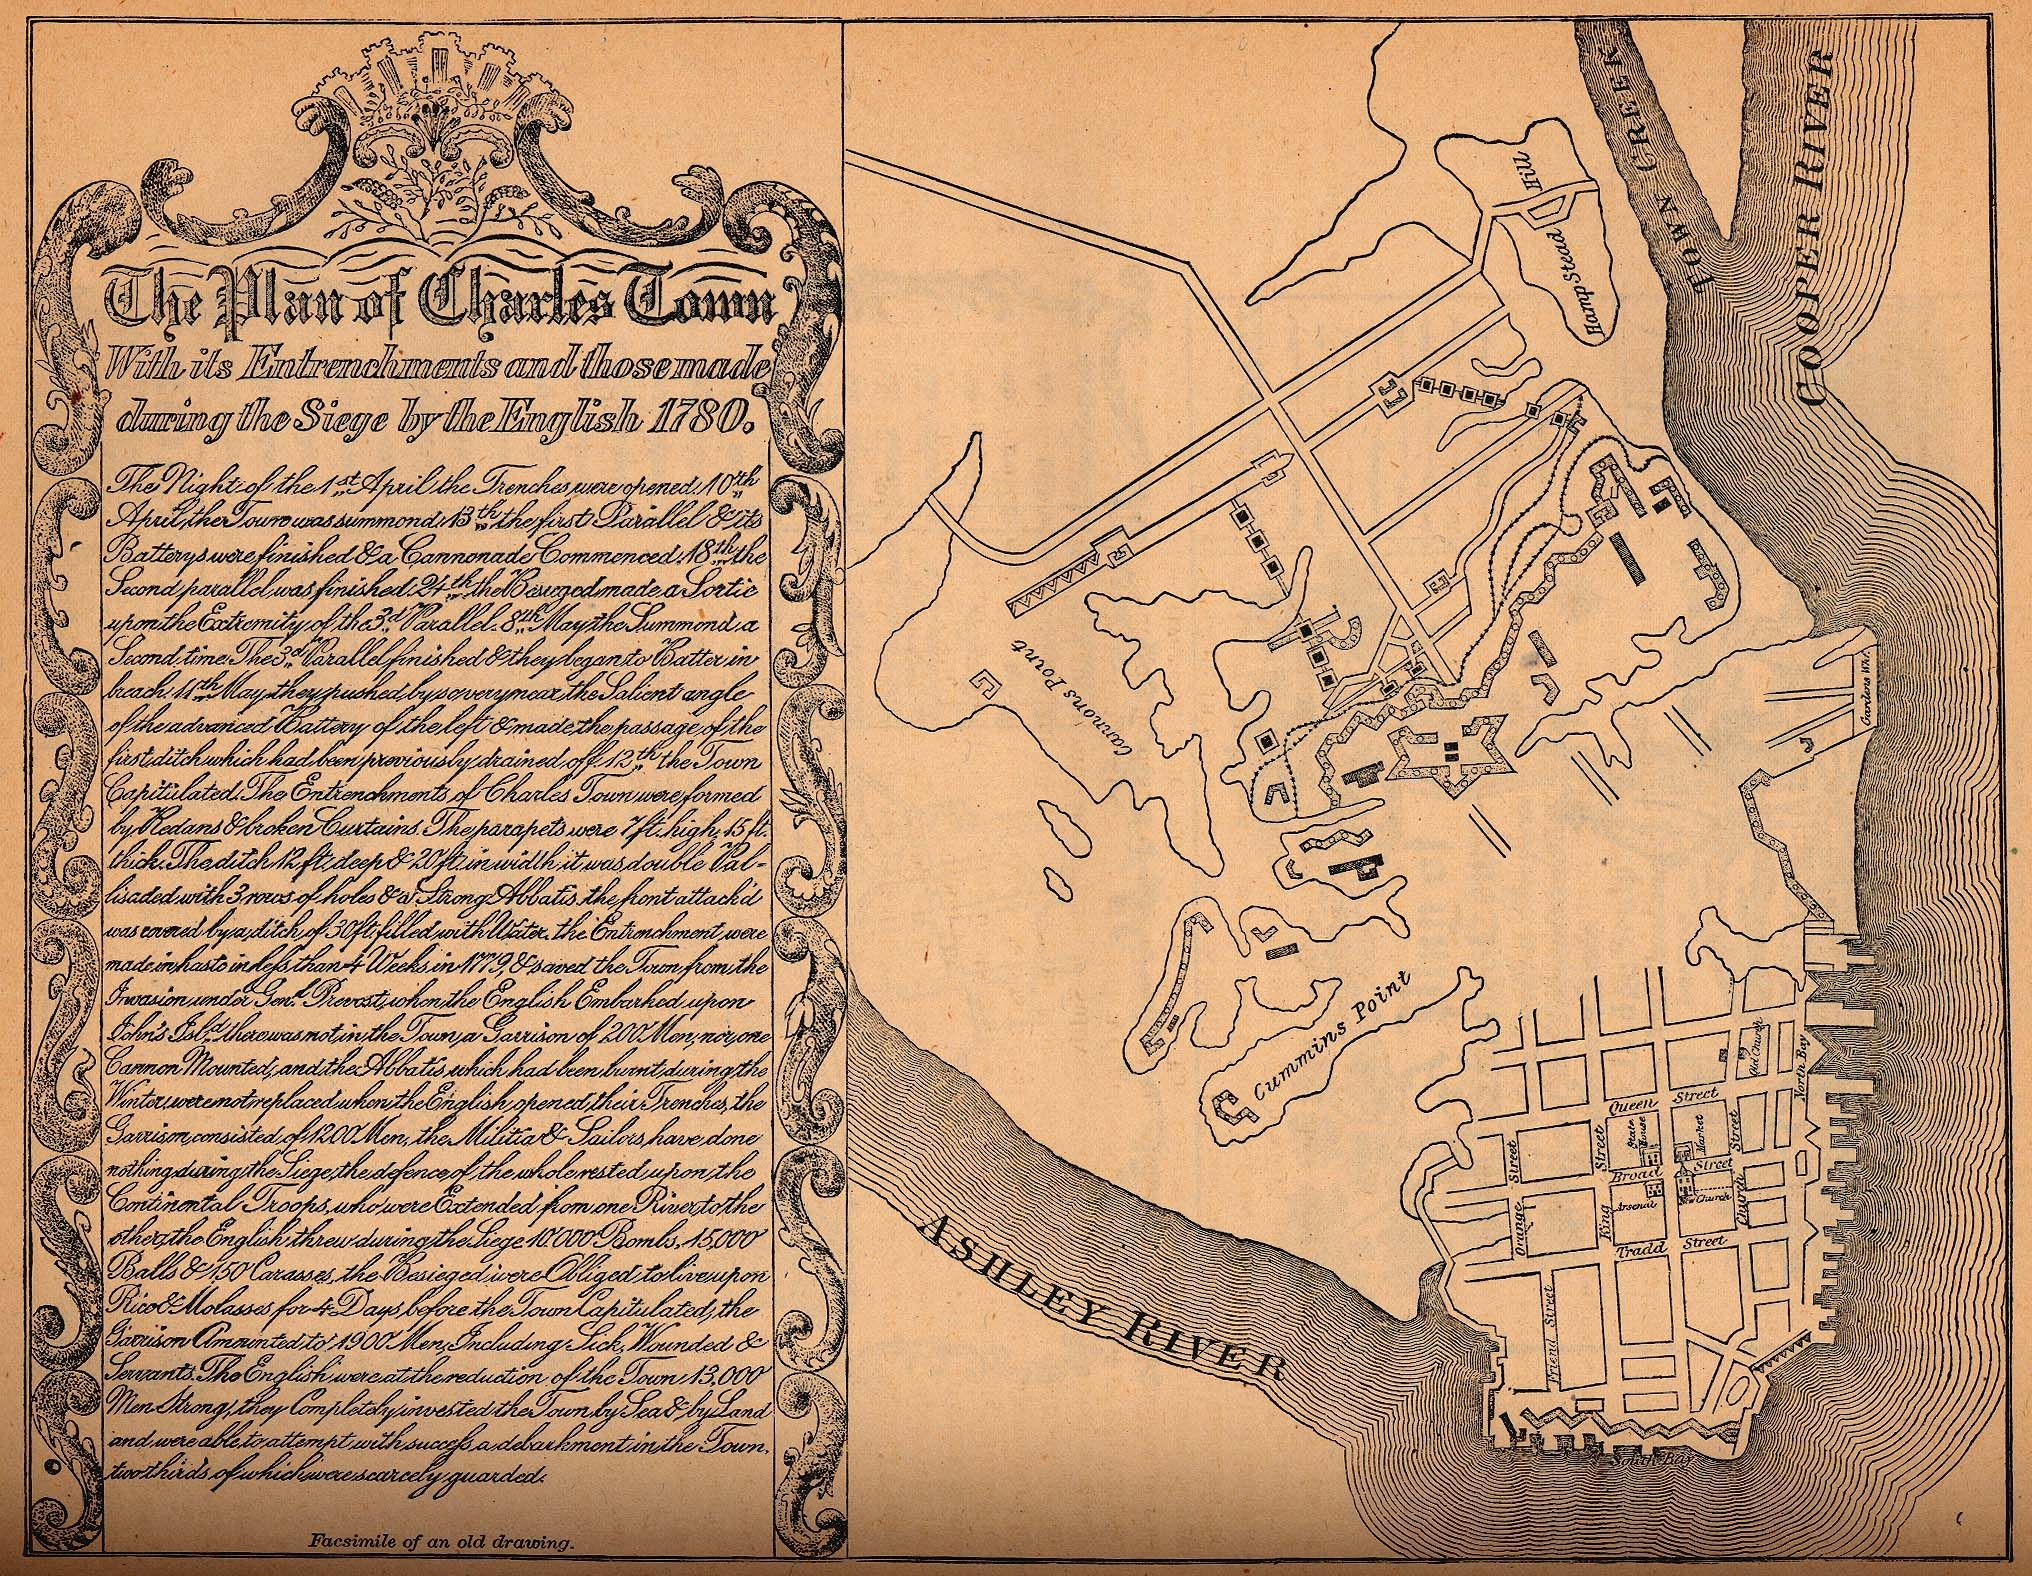 1790 map of Charleston City South